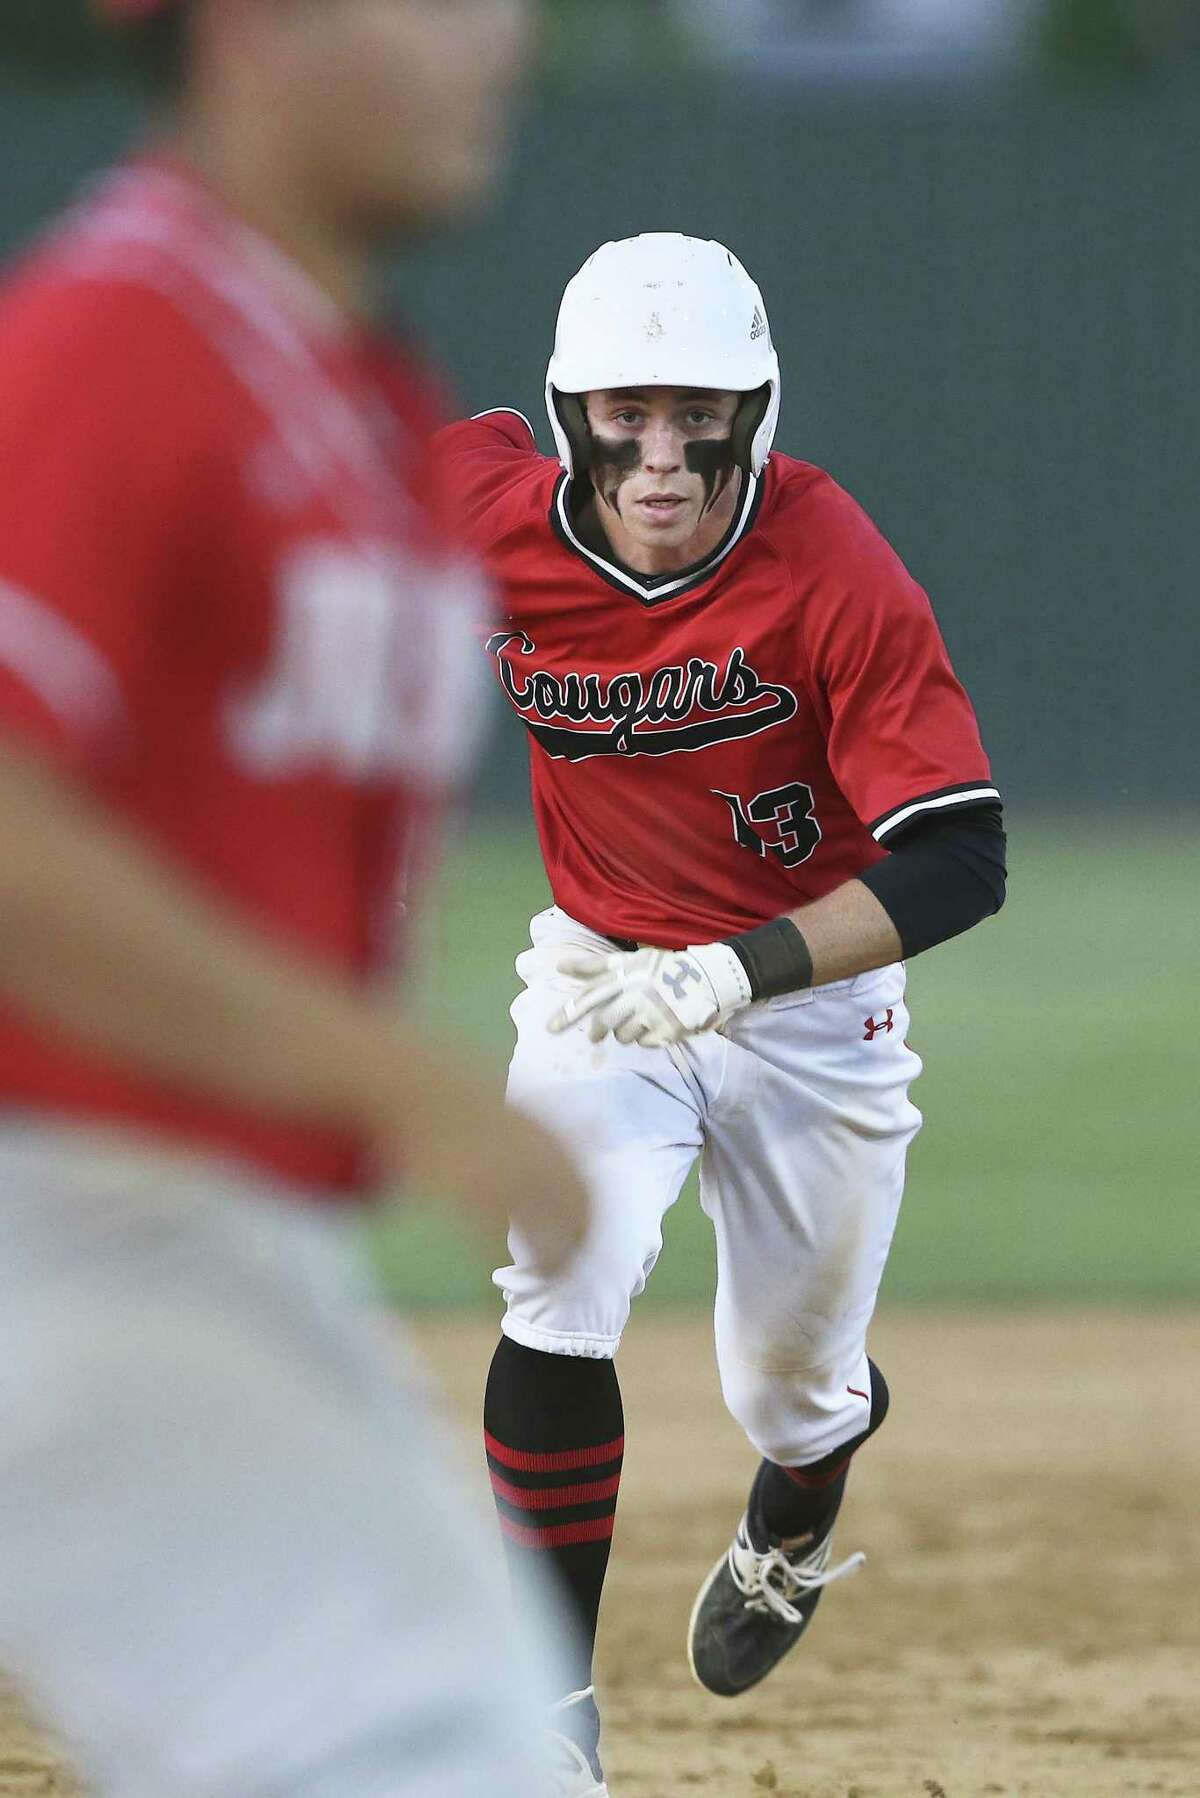 Payne McKay sprints in to steal third base for the Cougars as Canyon hosts Judson in baseball at Canyon High School on April 24, 2018.